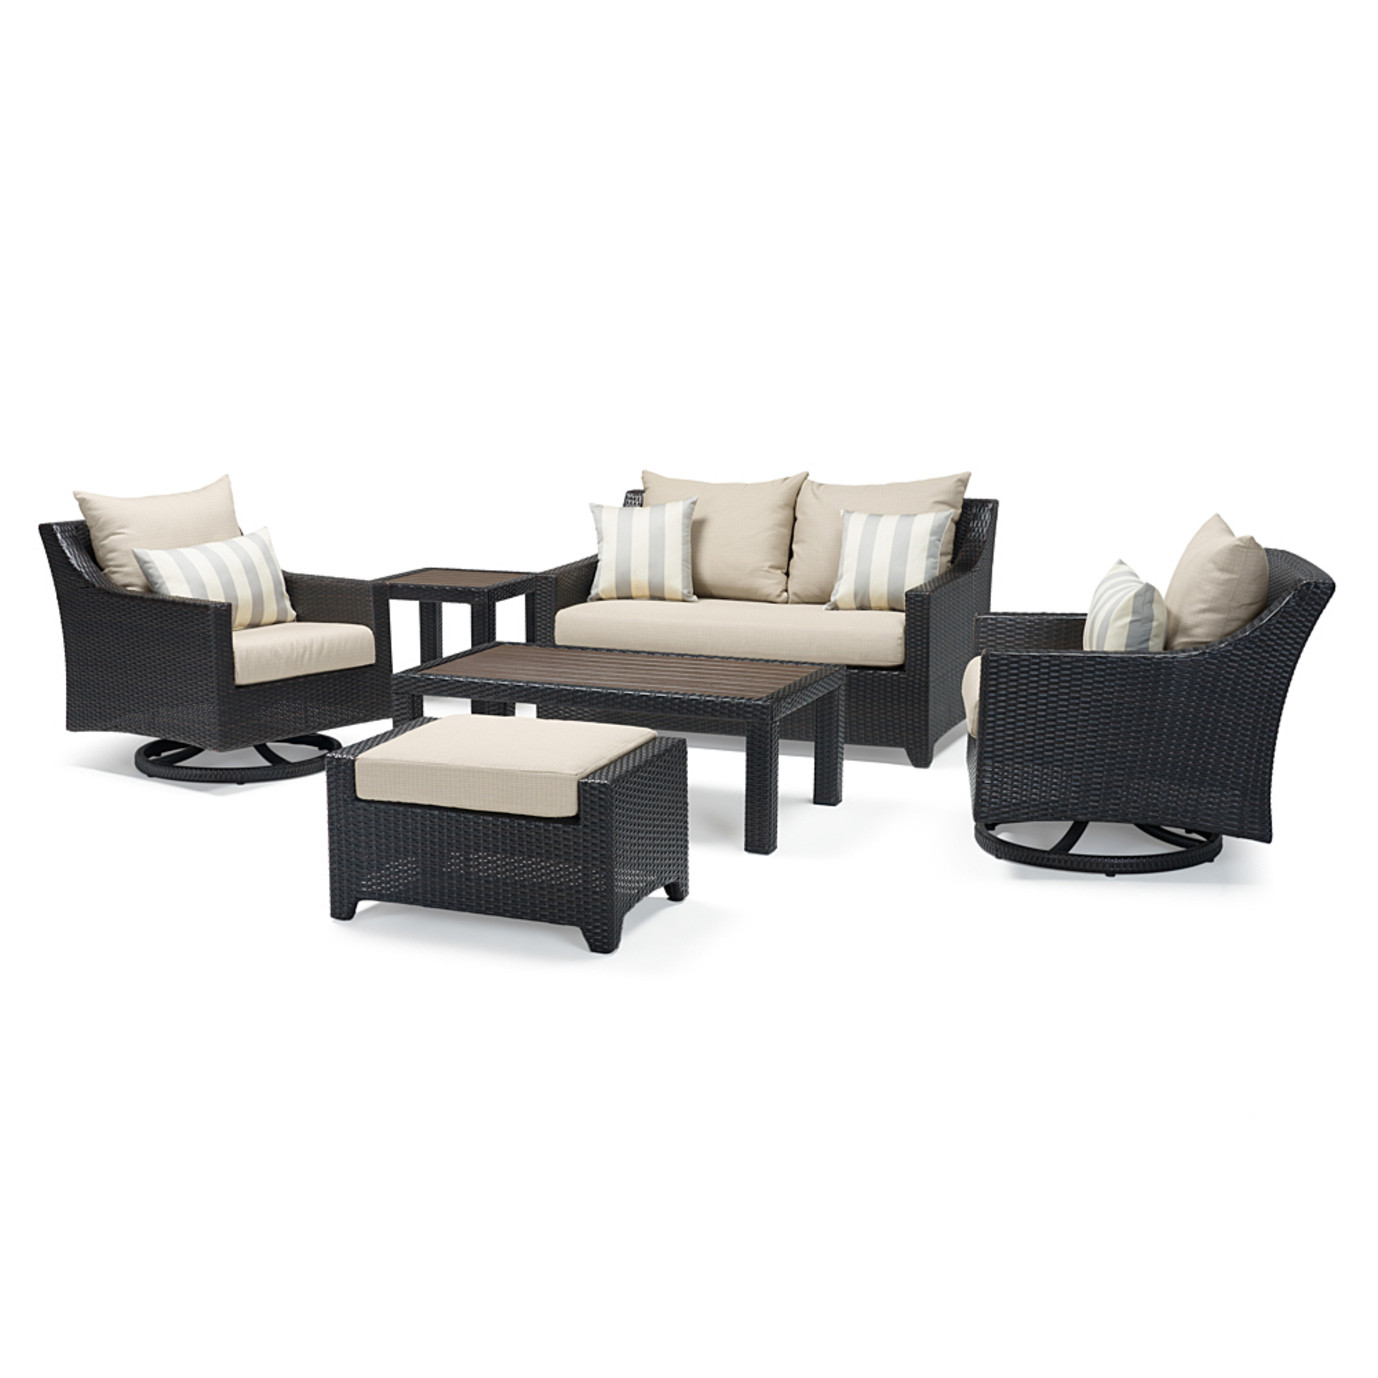 Deco Deluxe 6pc Love & Motion Club Seating Set - Slate Gray